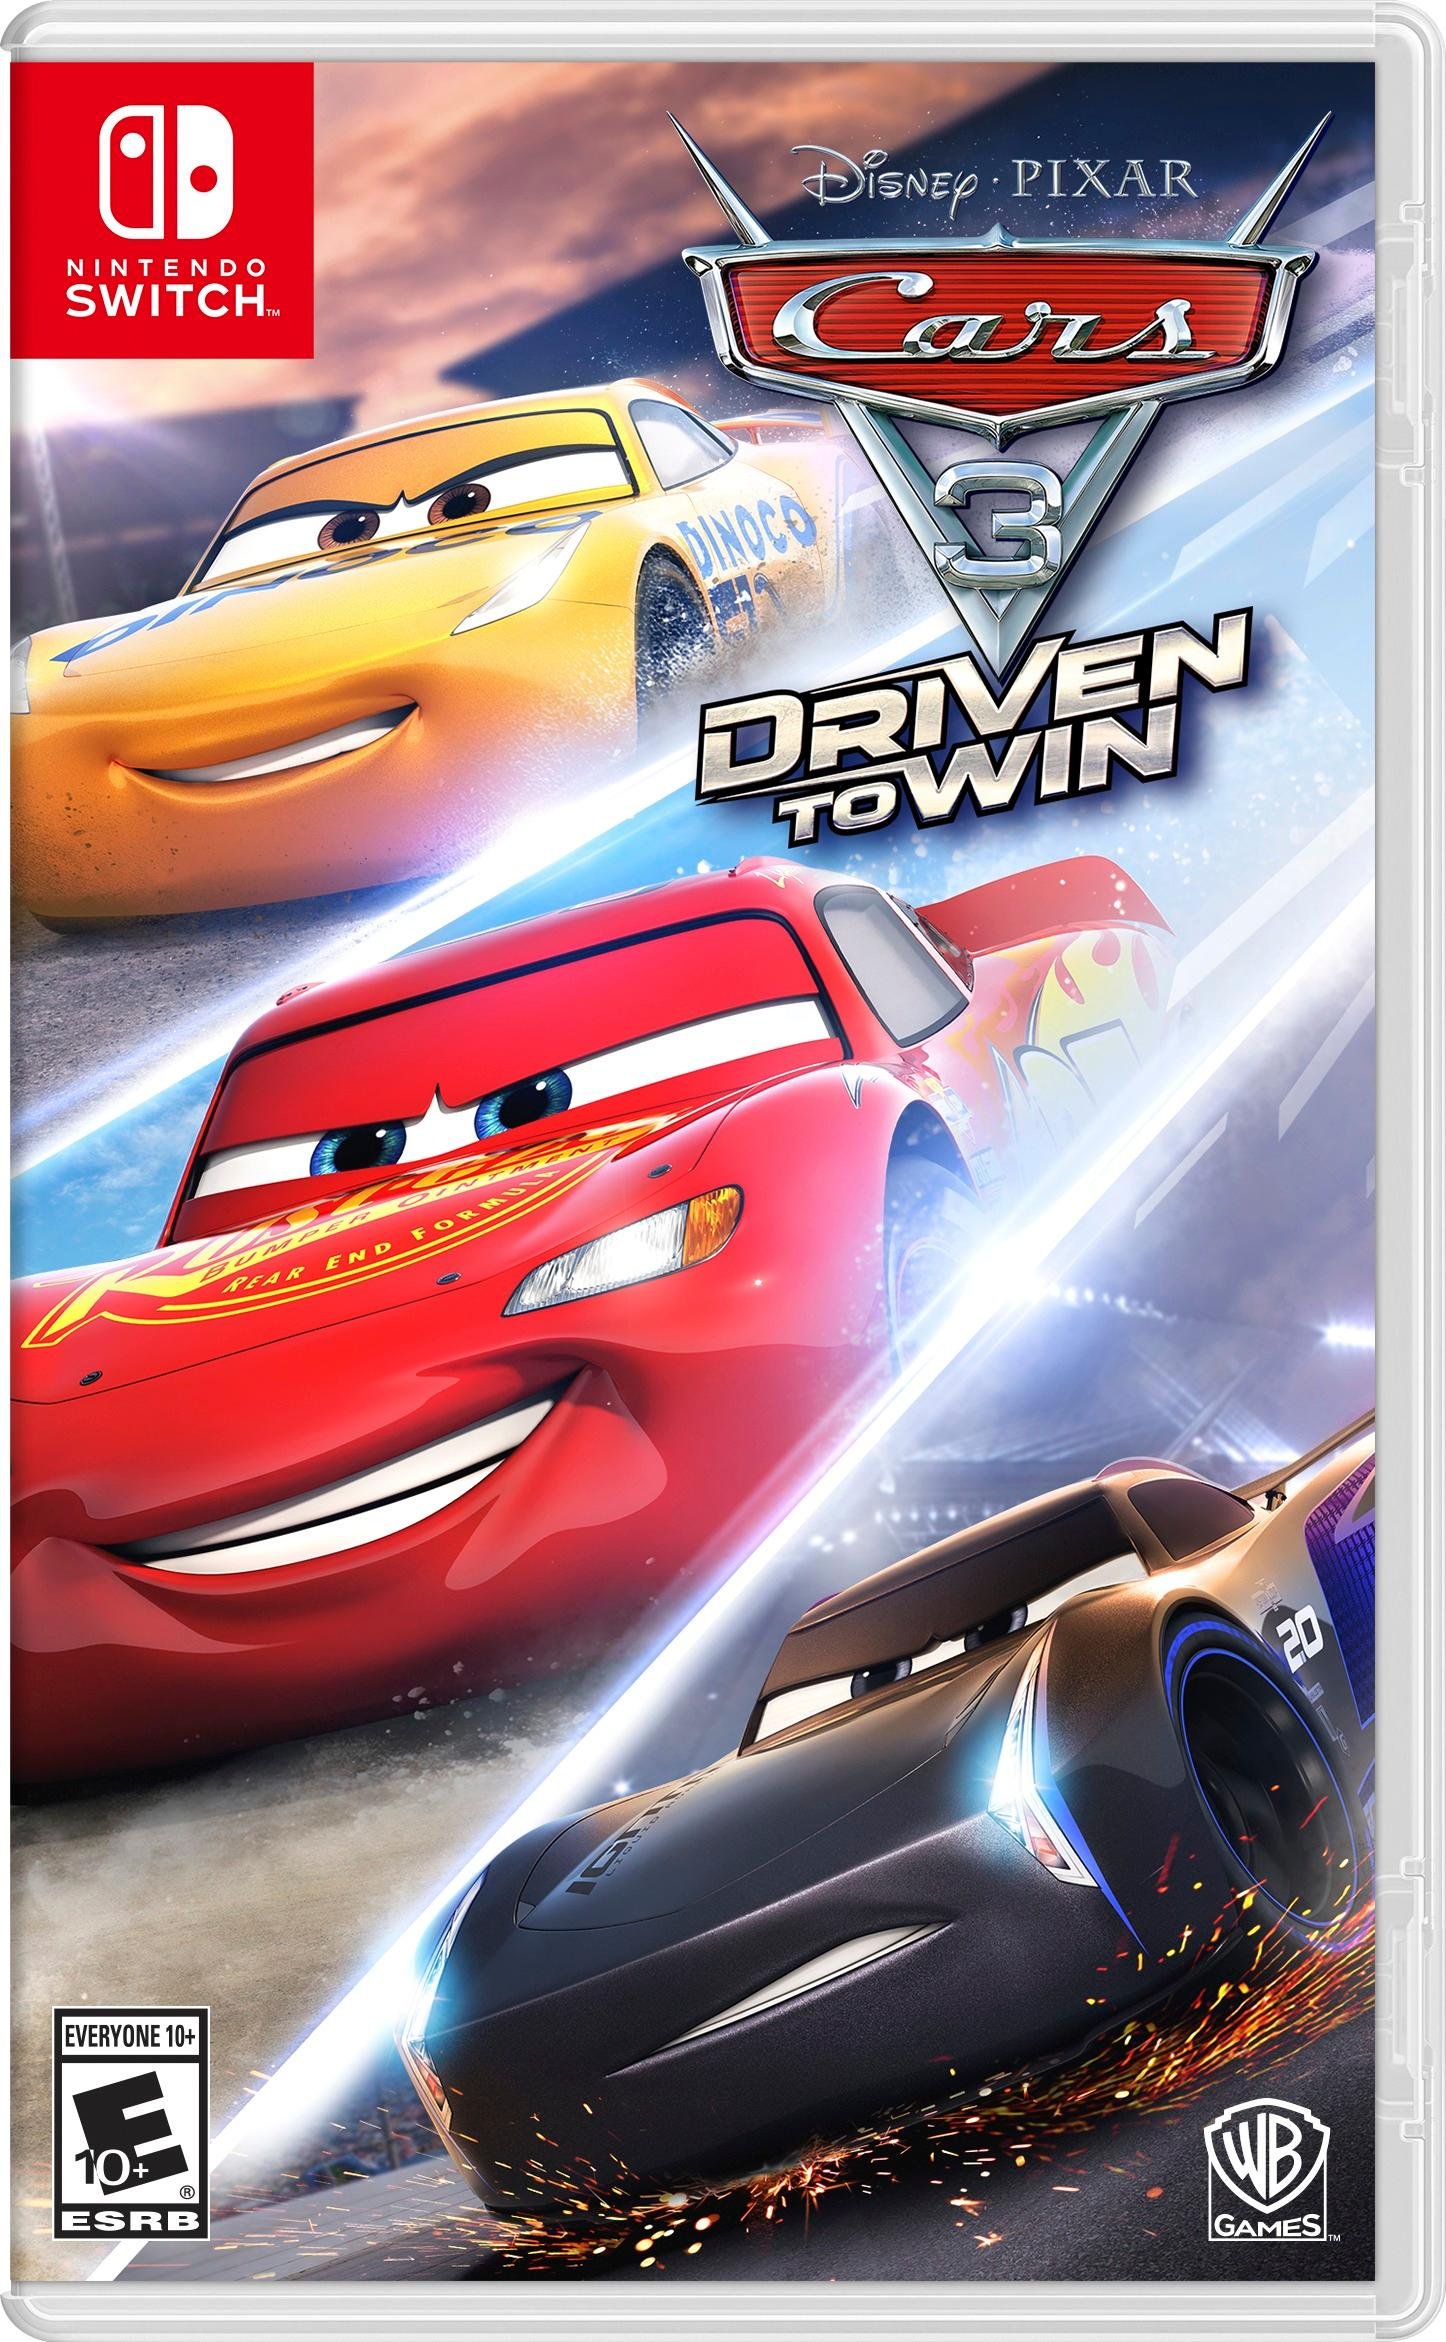 Disney Cars 3 Driven to win